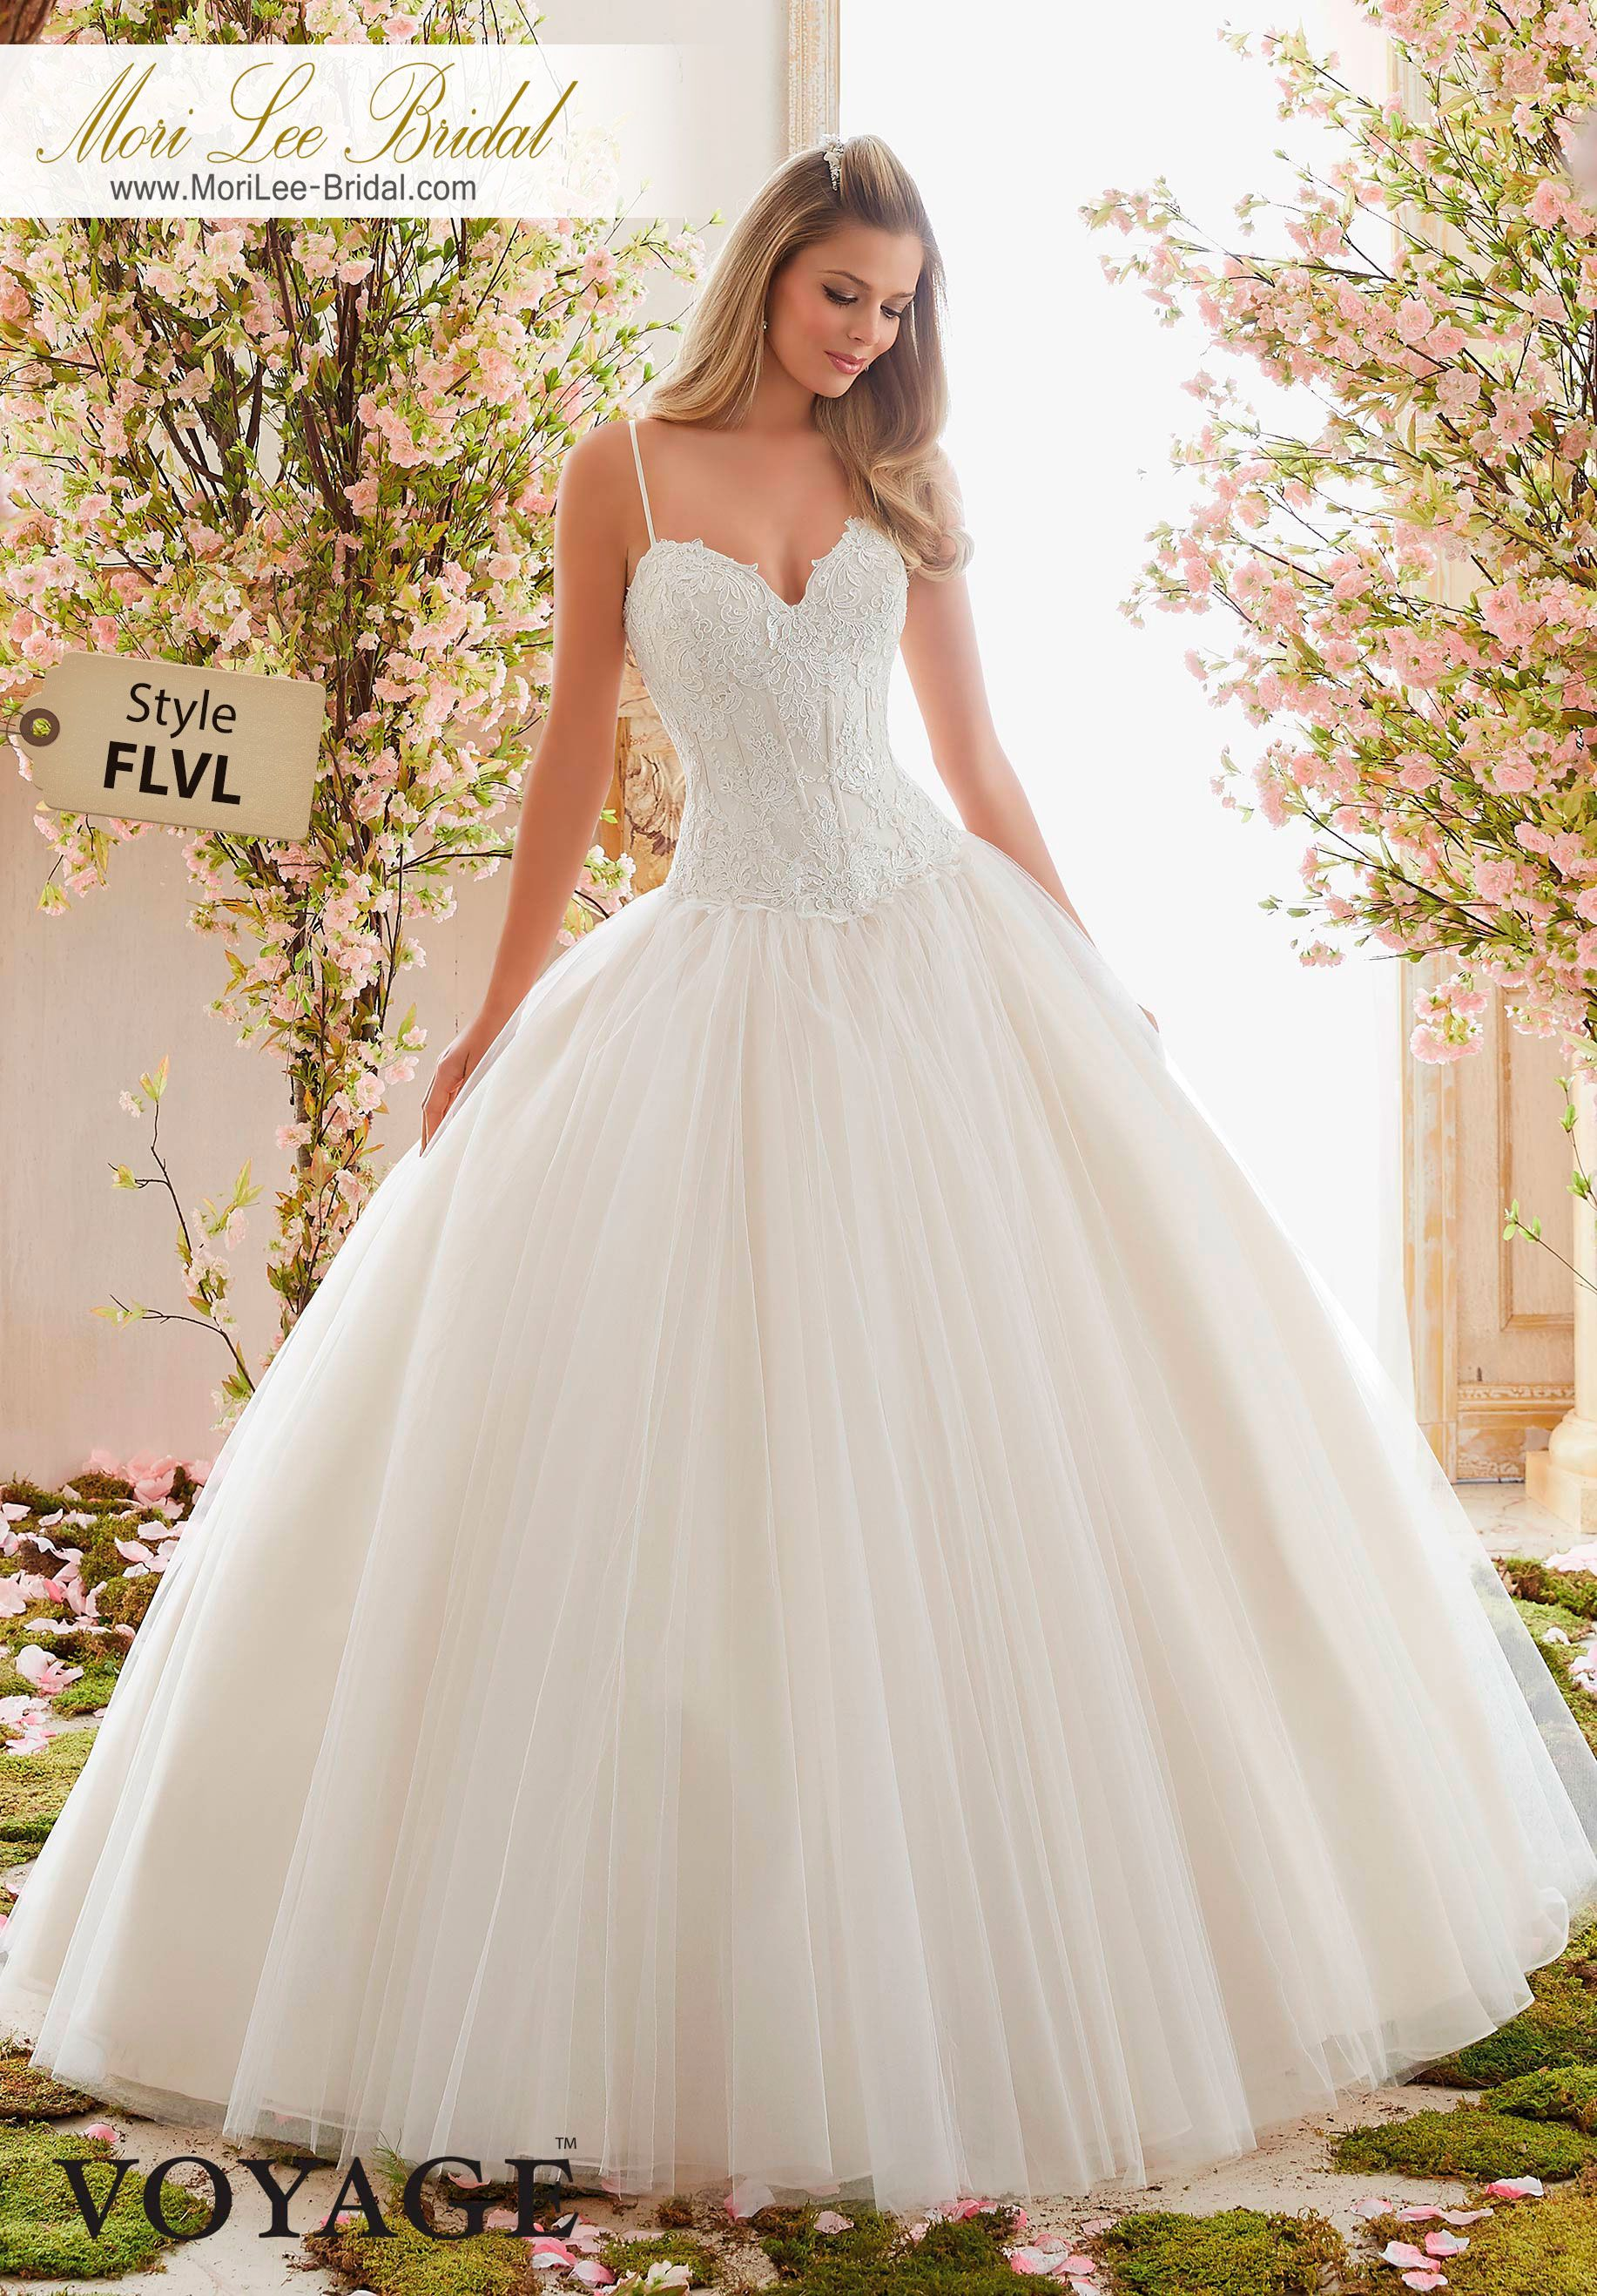 Dress style flvl alencon lace appliques over chantilly lace on tulle